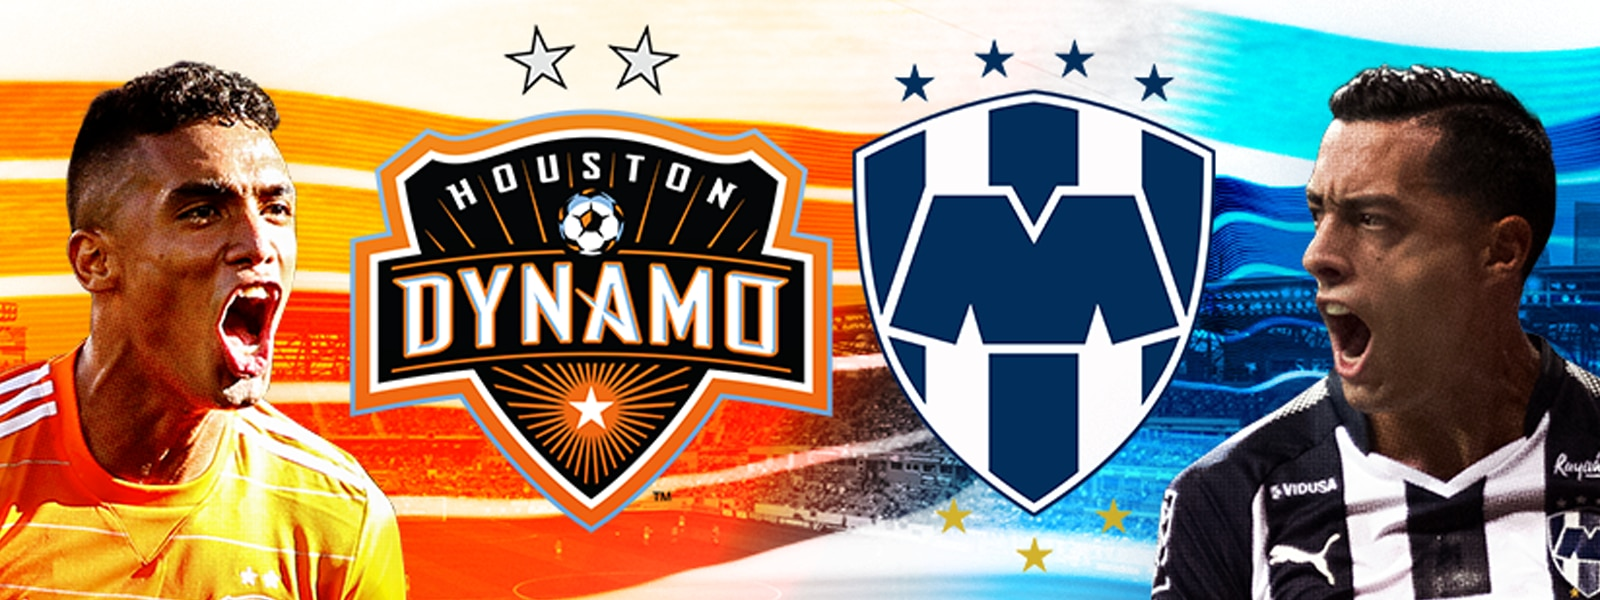 BBVACompass-Dynamo-Charities-Cup-2018